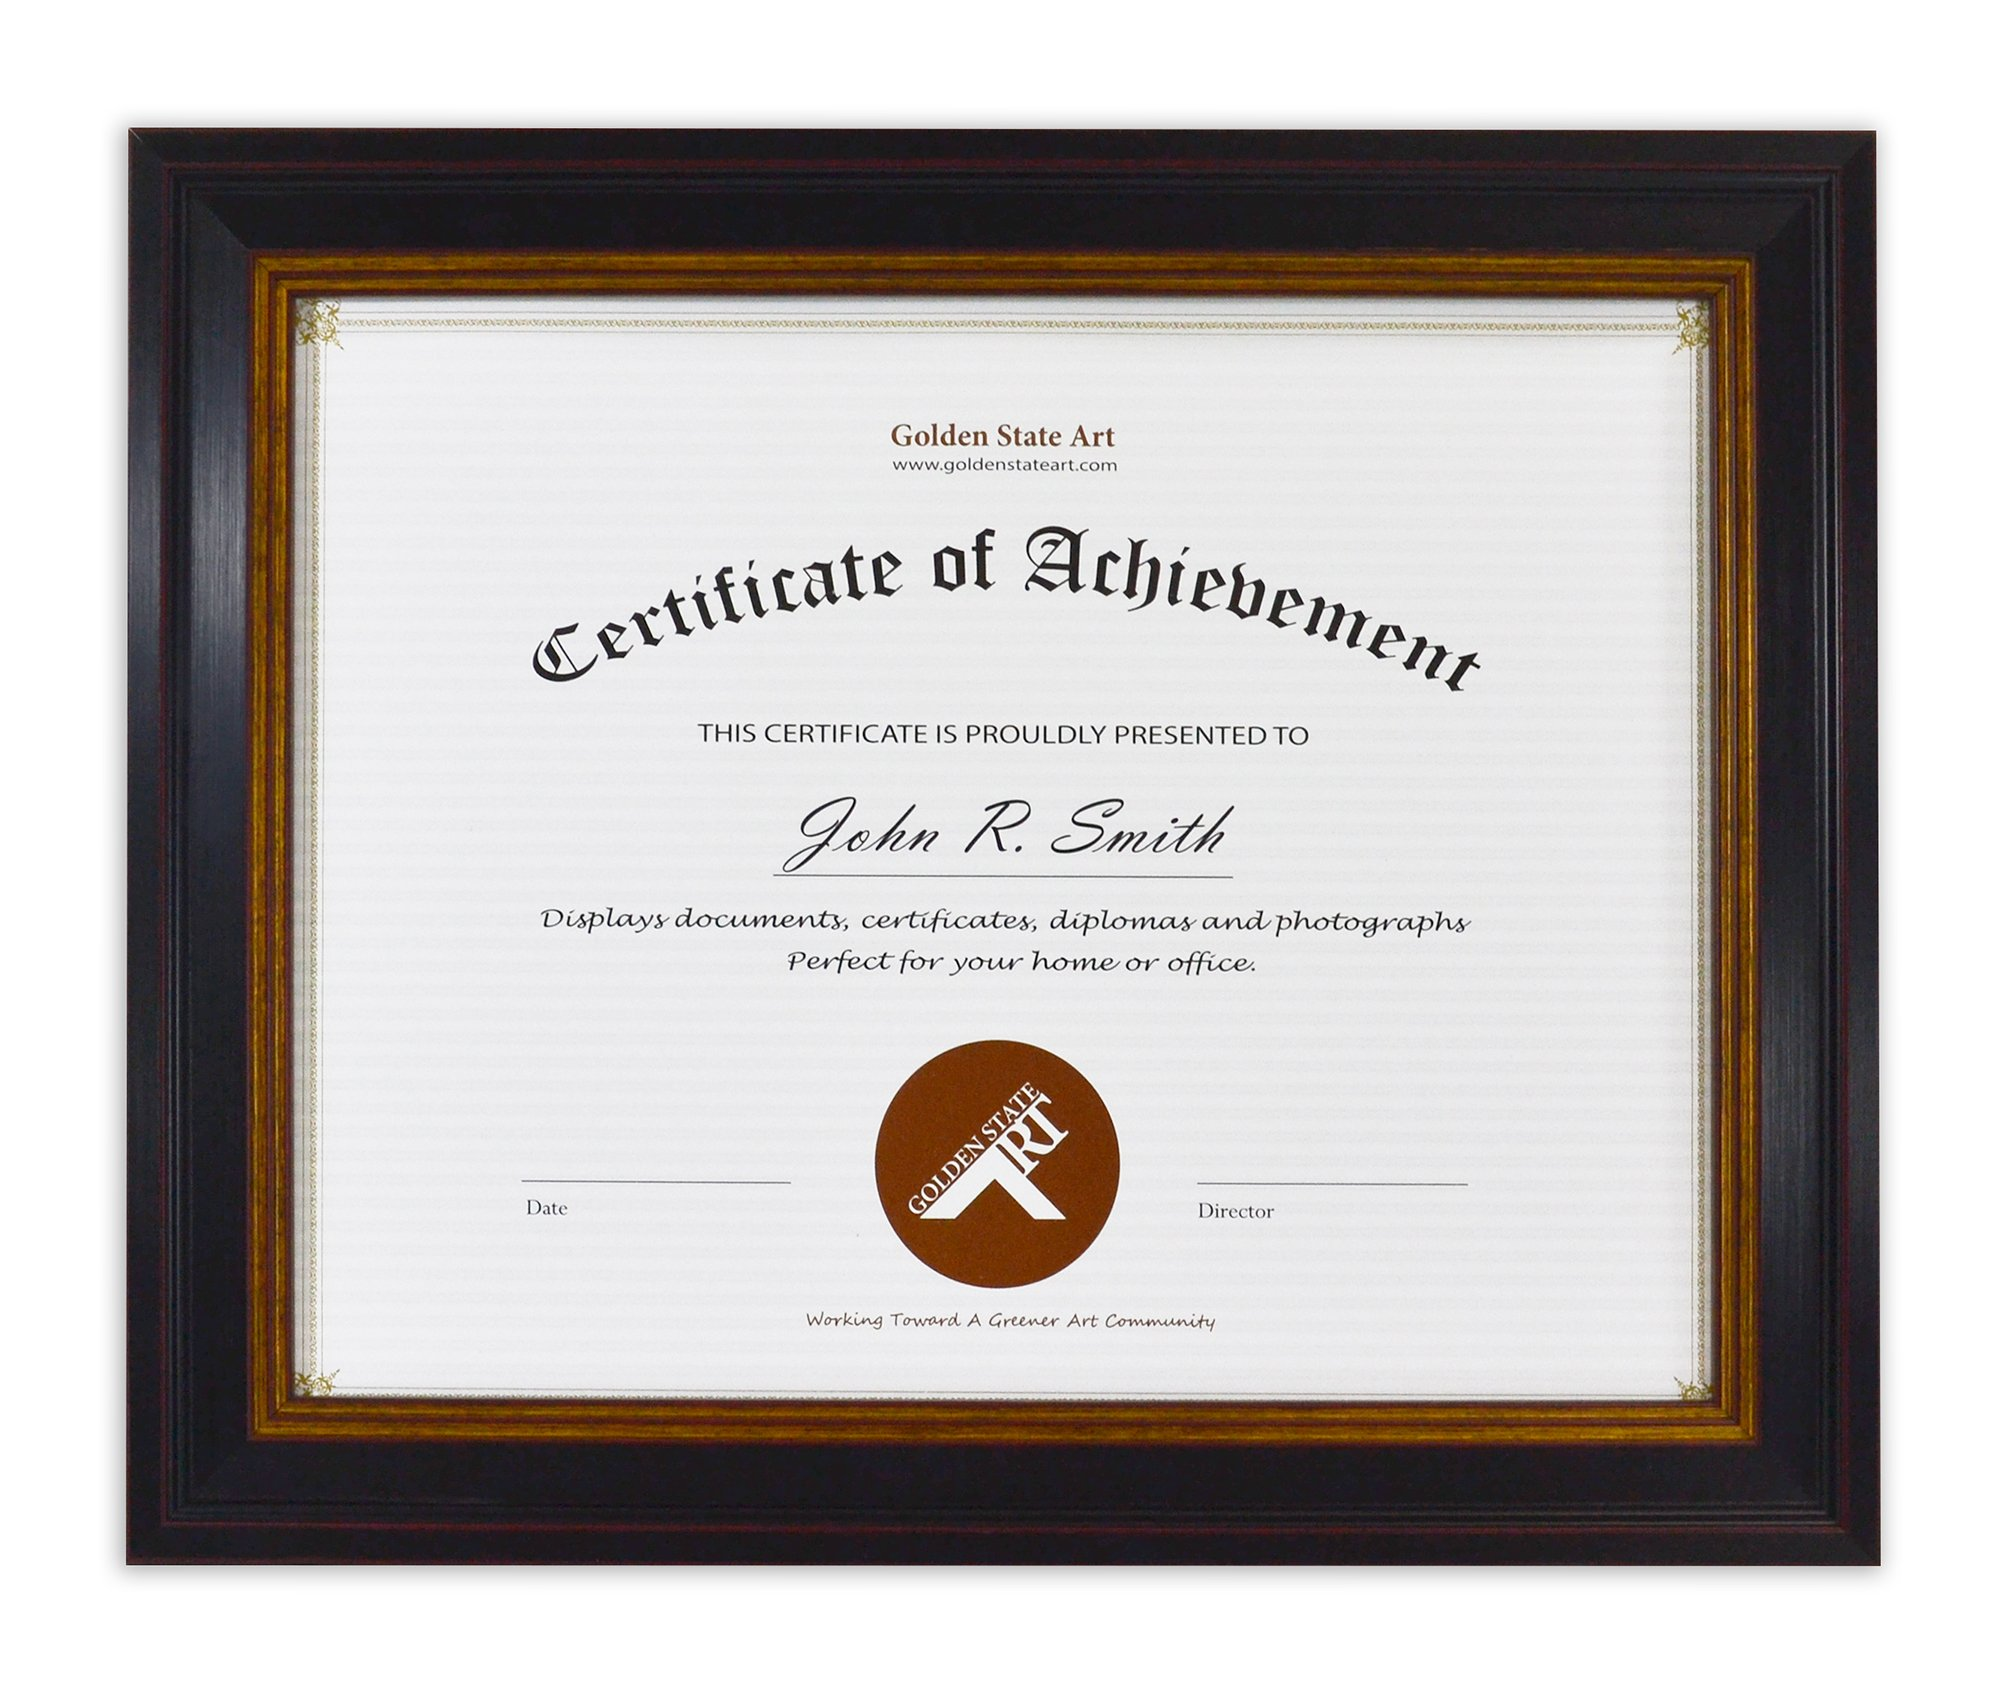 Golden State Art, 8.5x11 Photo Frame for Diploma/Certificate, Black Gold & Burgundy Color. Includes Real Glass & Table-top Display by Golden State Art